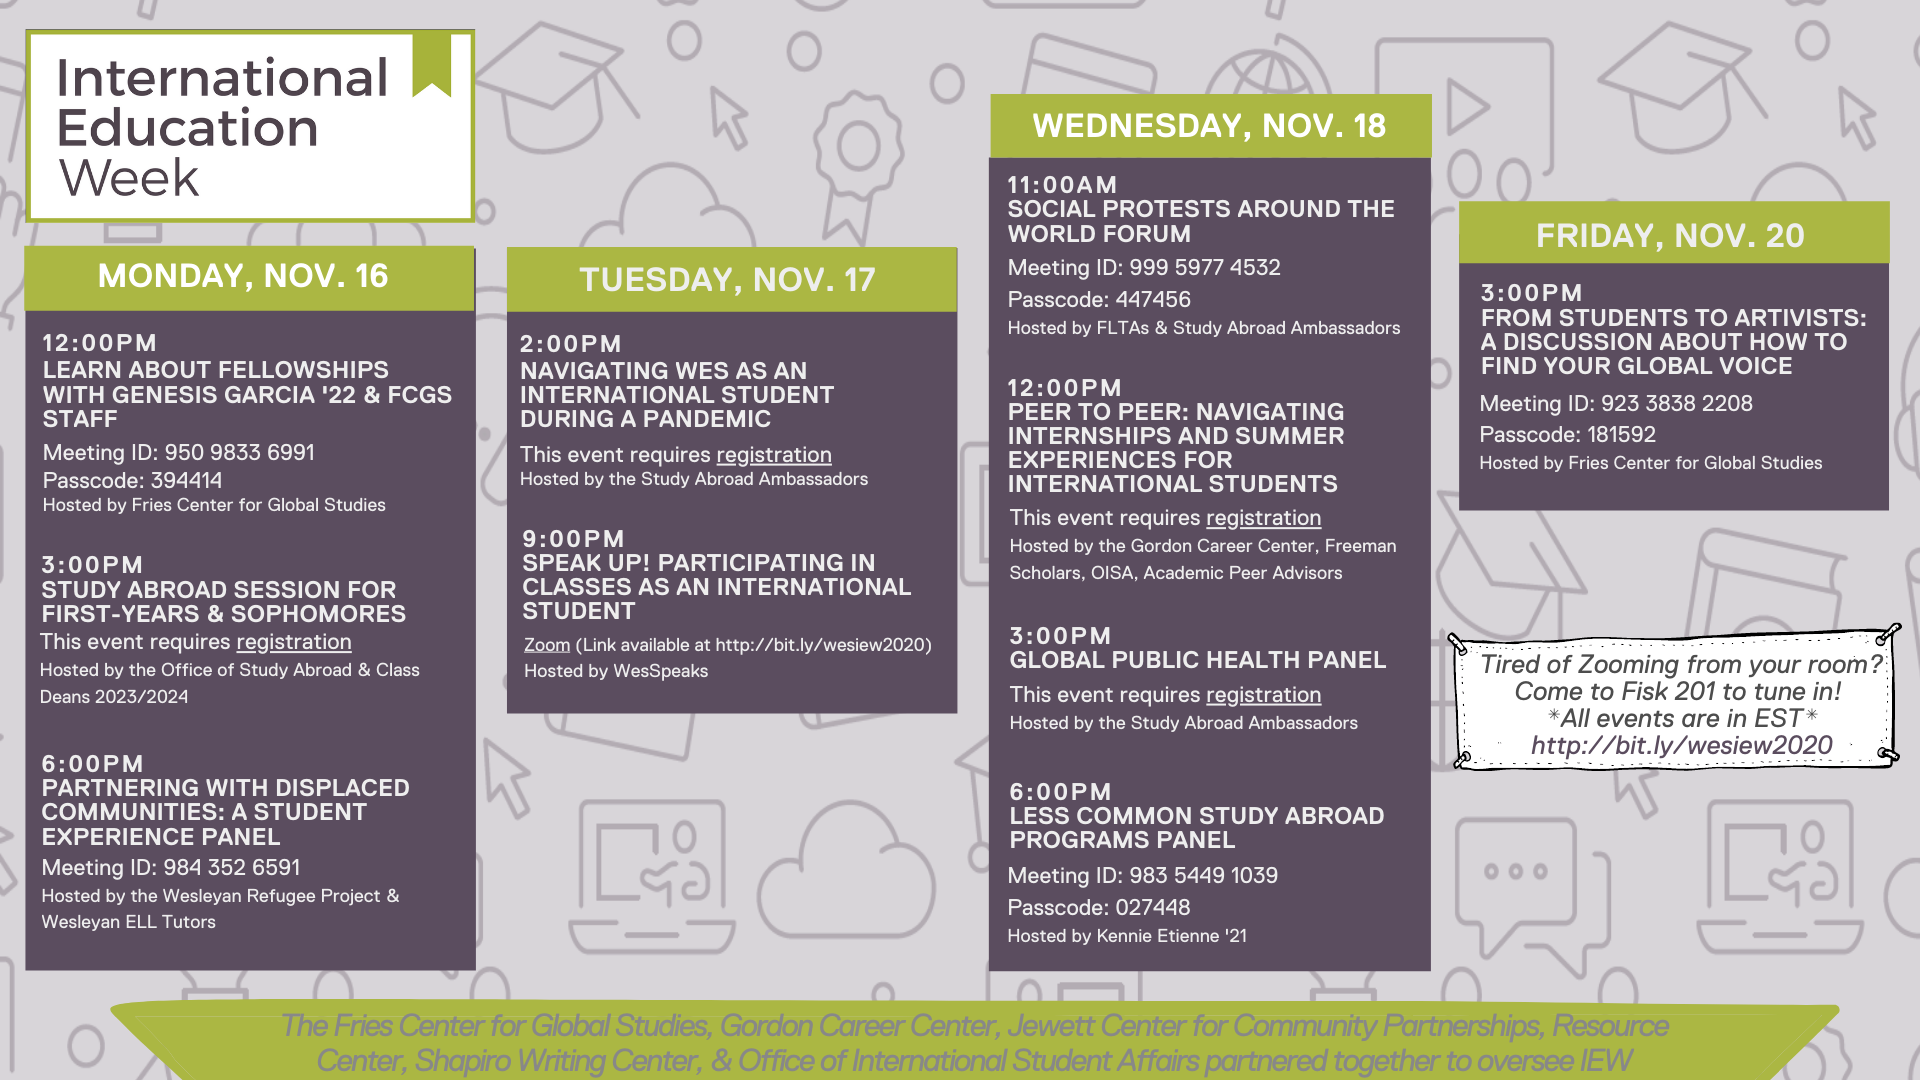 Mark your calendars for the International Education Week